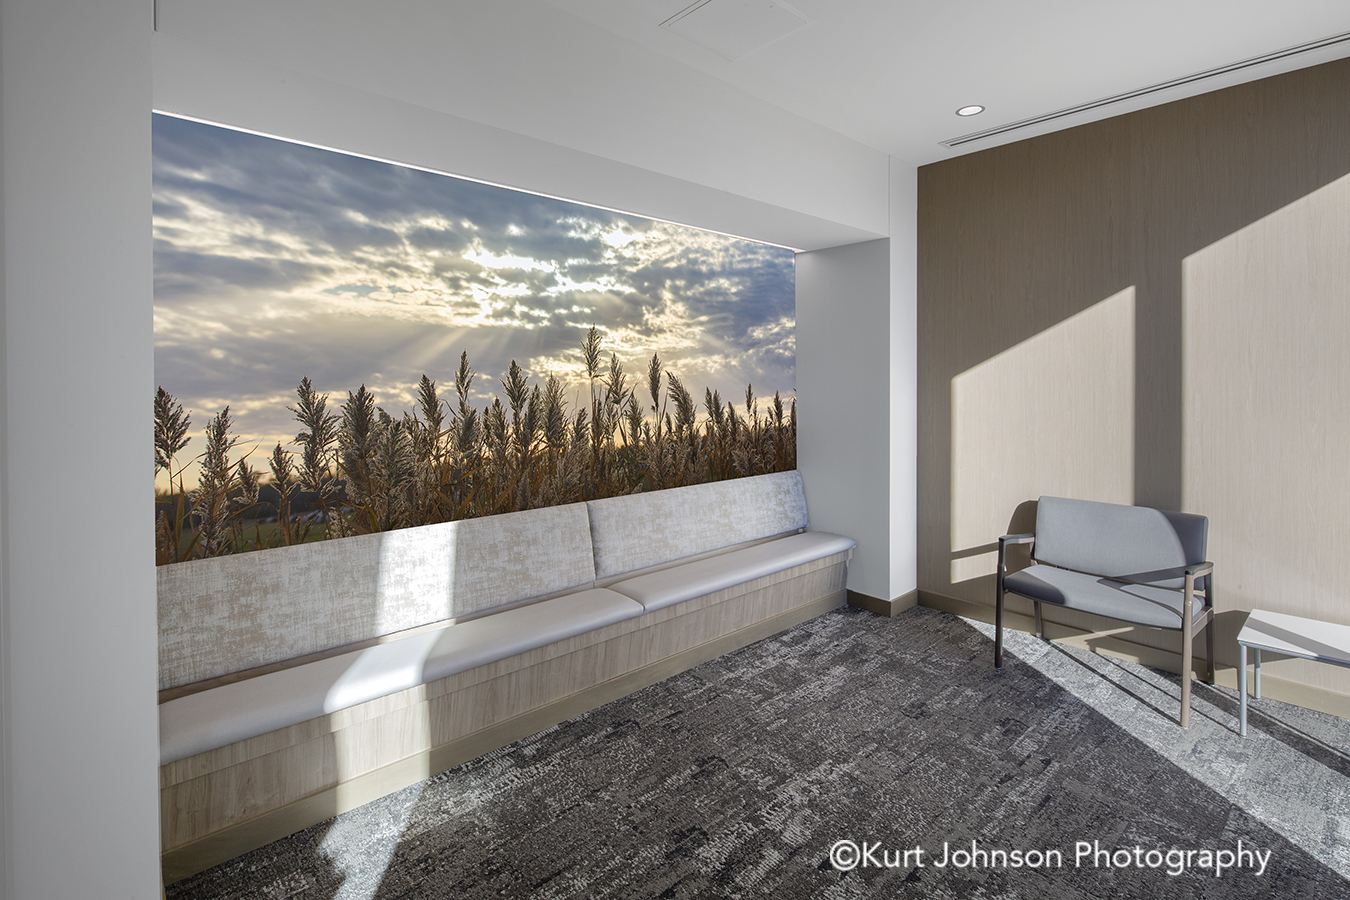 grass grasses landscape koroseal type II vinyl wallcovering install healthcare installation CHI St Saint Francis Grand Island Nebraska clinic cancer treatment meditation room